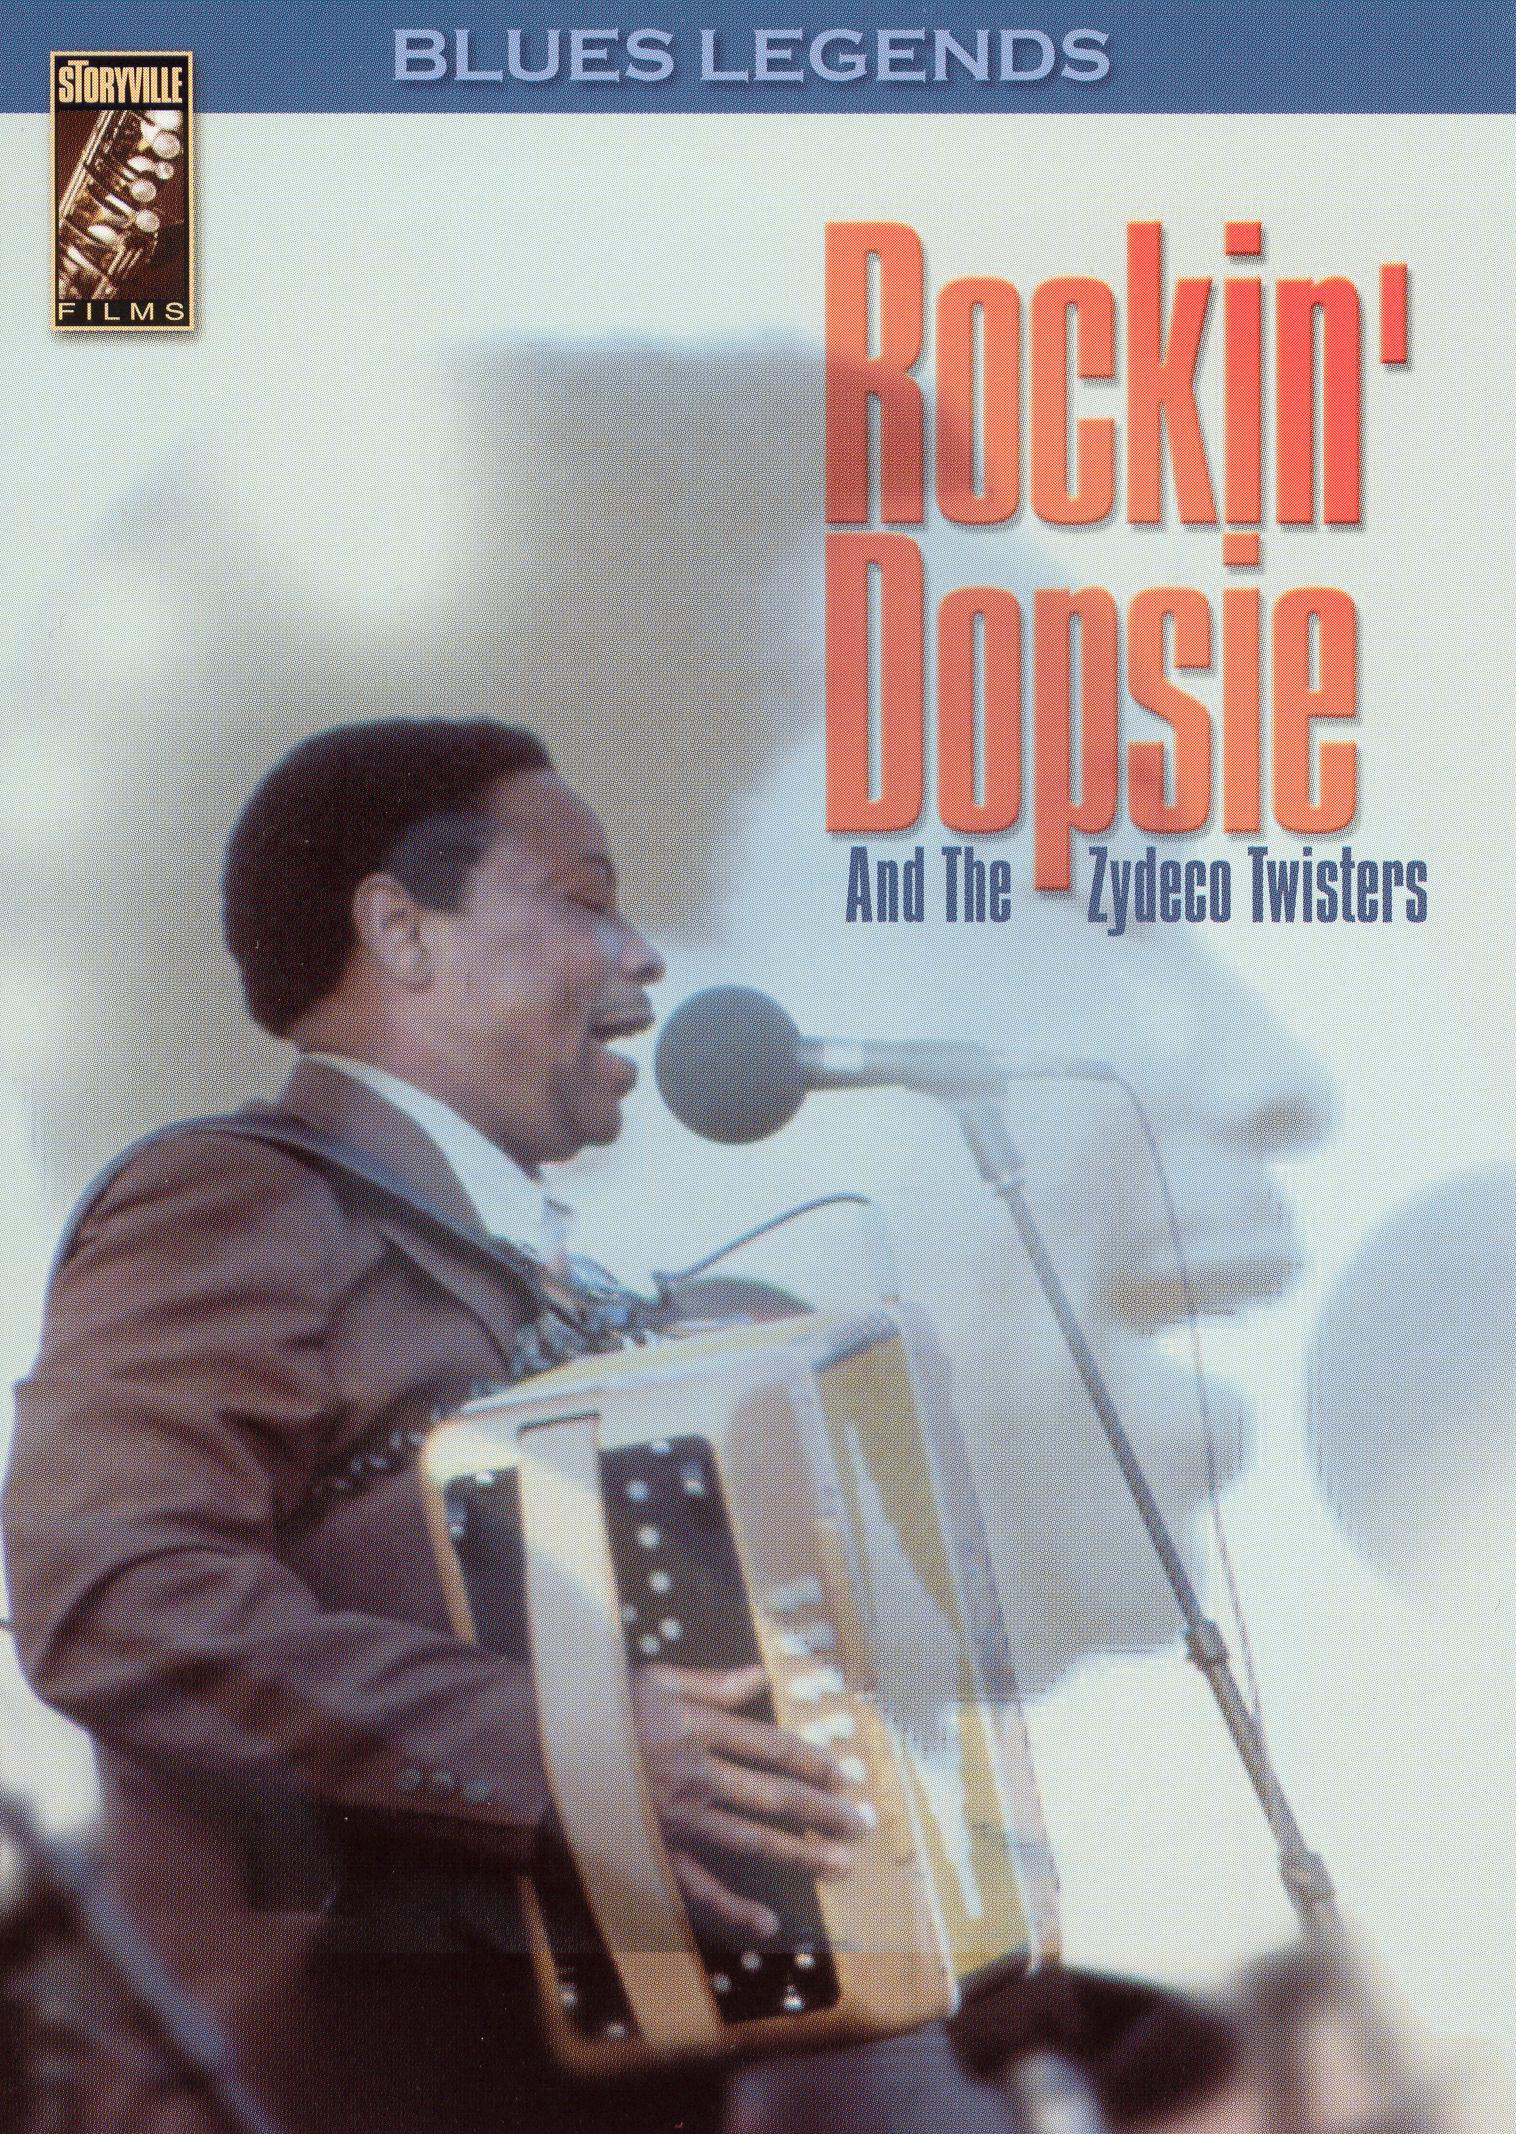 Rockin' Dopsie and the Zydeco Twisters: Live at The Maple Leaf